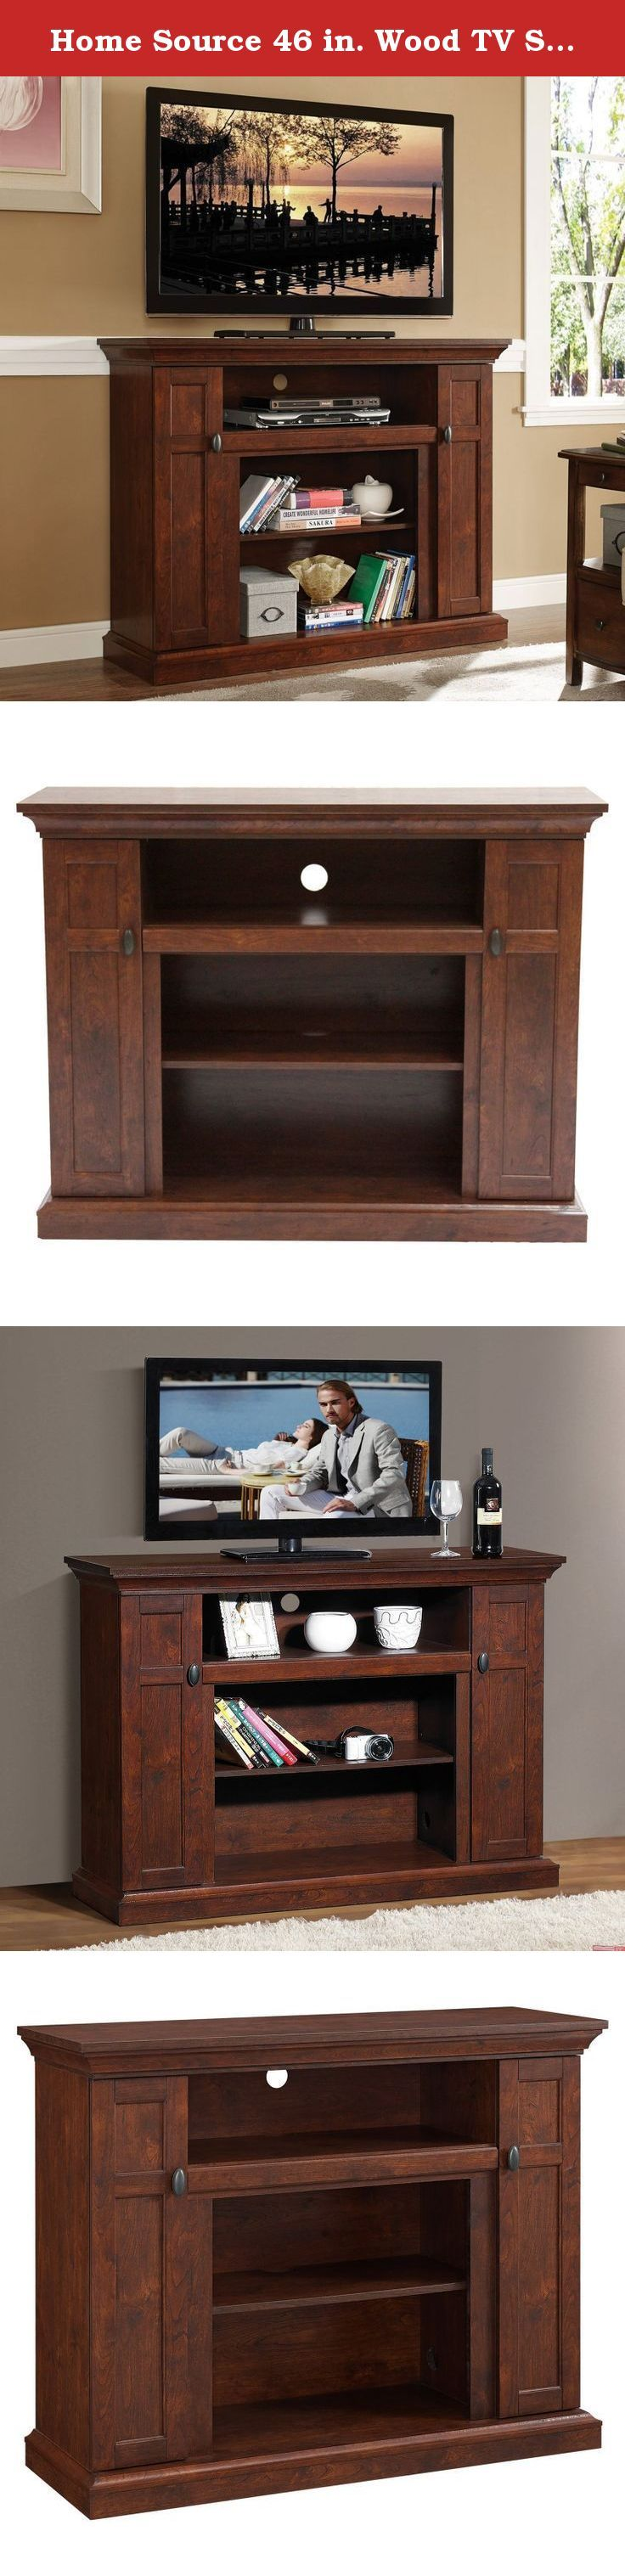 Home Source 46 in. Wood TV Stand -. For top-notch entertainment, the Home Source 46 in. Wood TV Stand - Dark Walnut comes with three exposed component shelves with wire management back paneling that makes it easy to outfit the entertainment center with the best sound system, HD Blu-ray player, latest generation gaming consoles, and more. The solid stand flaunts a traditional look with molded trim and a dark walnut finish to give your decor a more lavish appeal. In addition to its open...